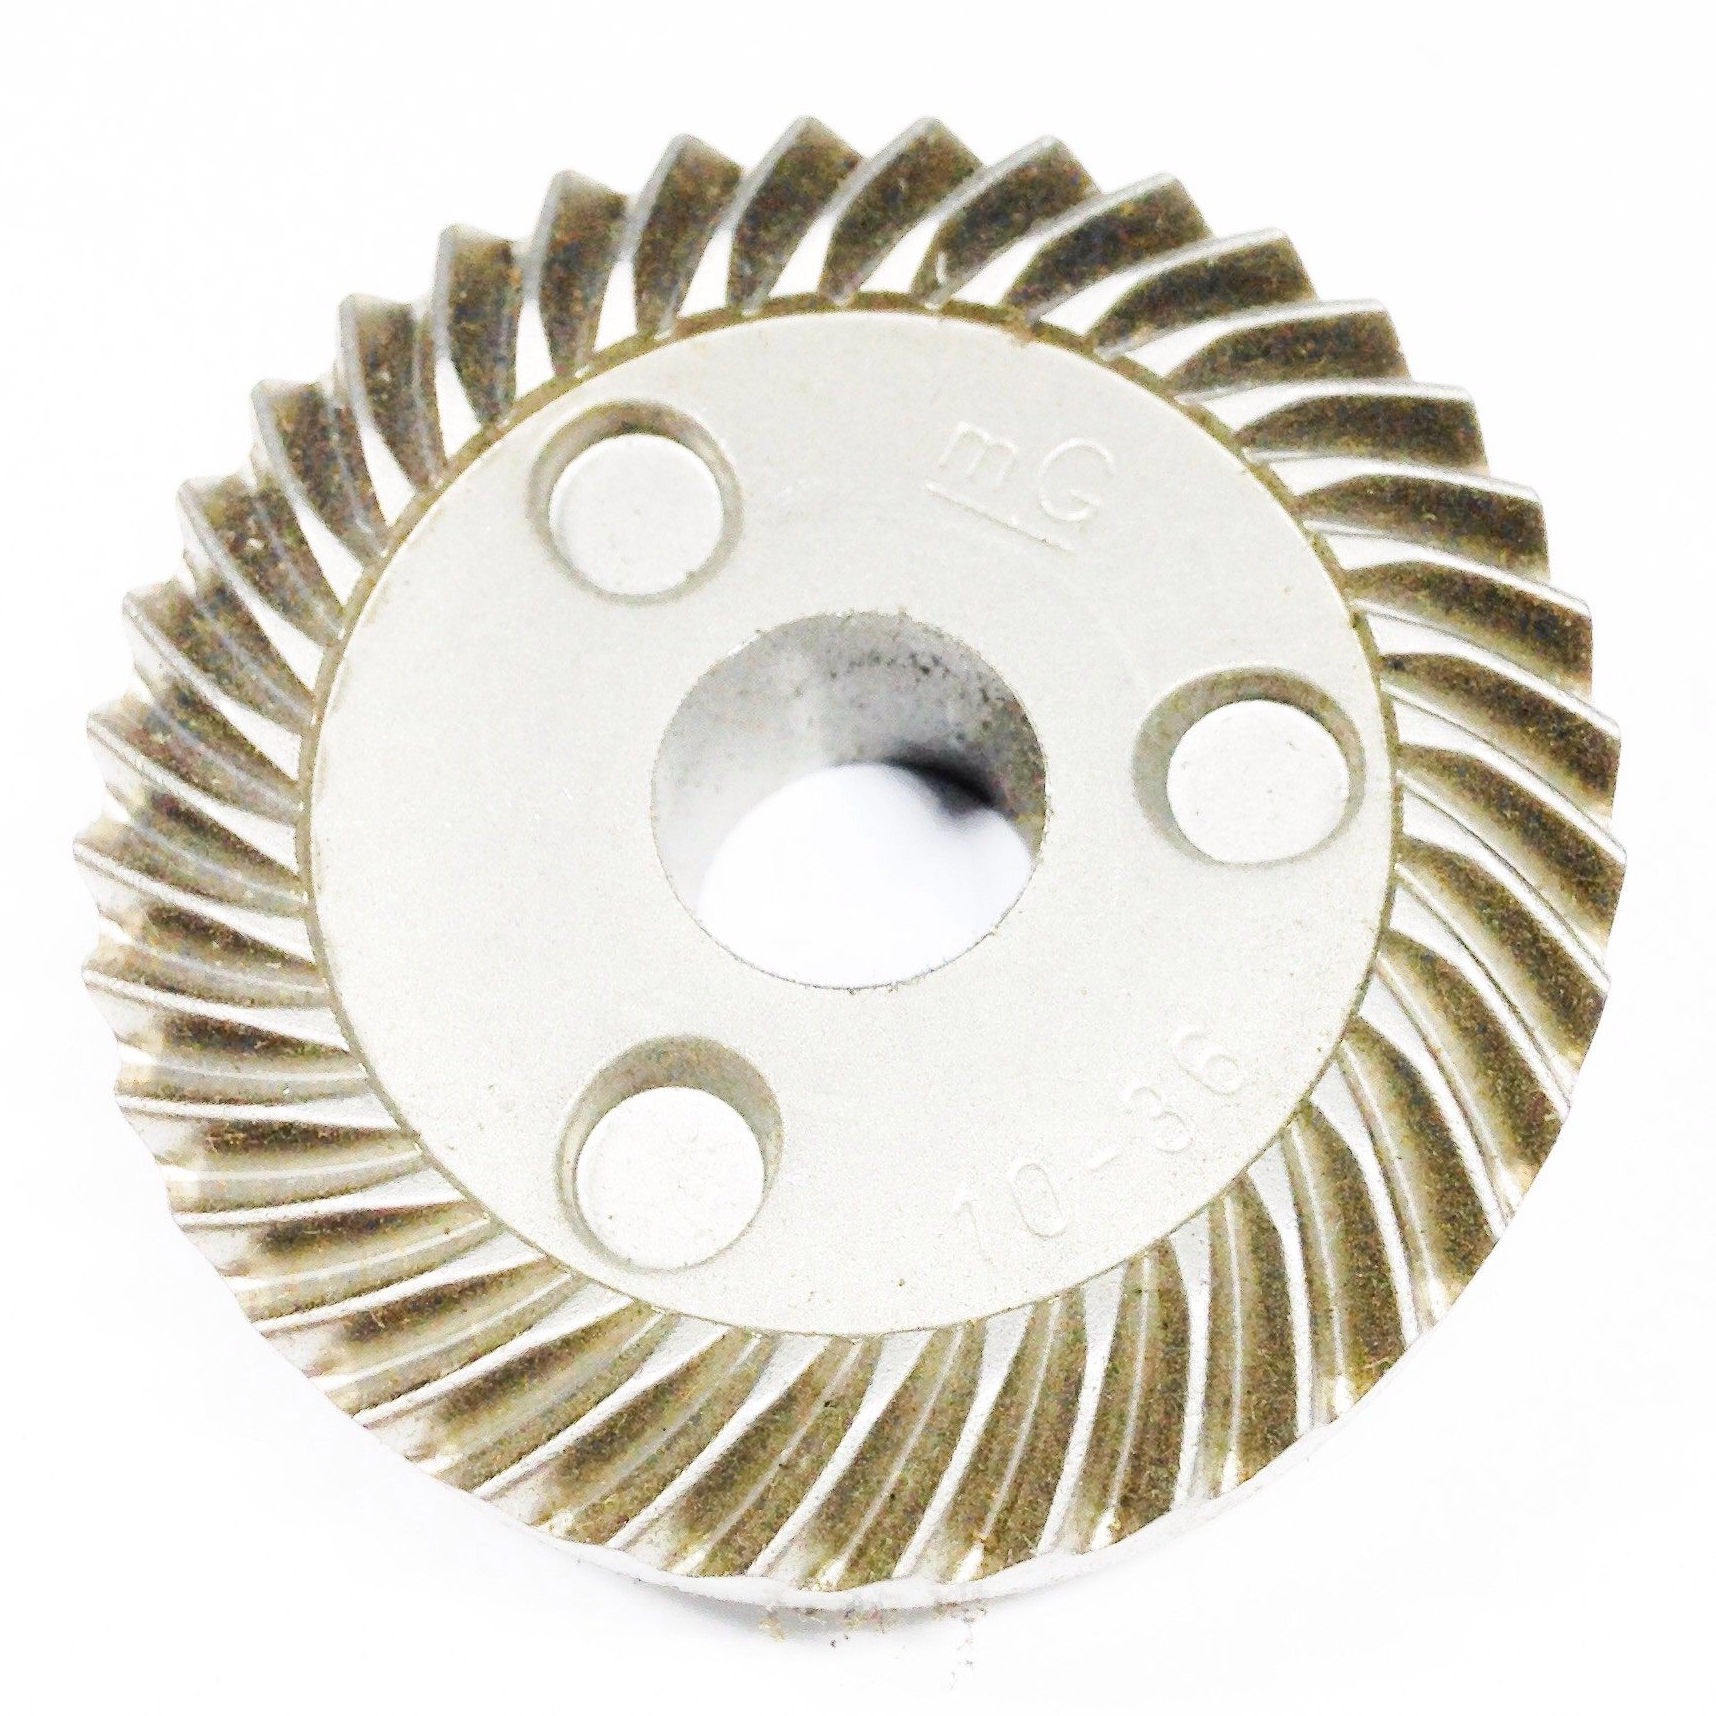 226749-6 Makita Spiral Bevel Gear 36